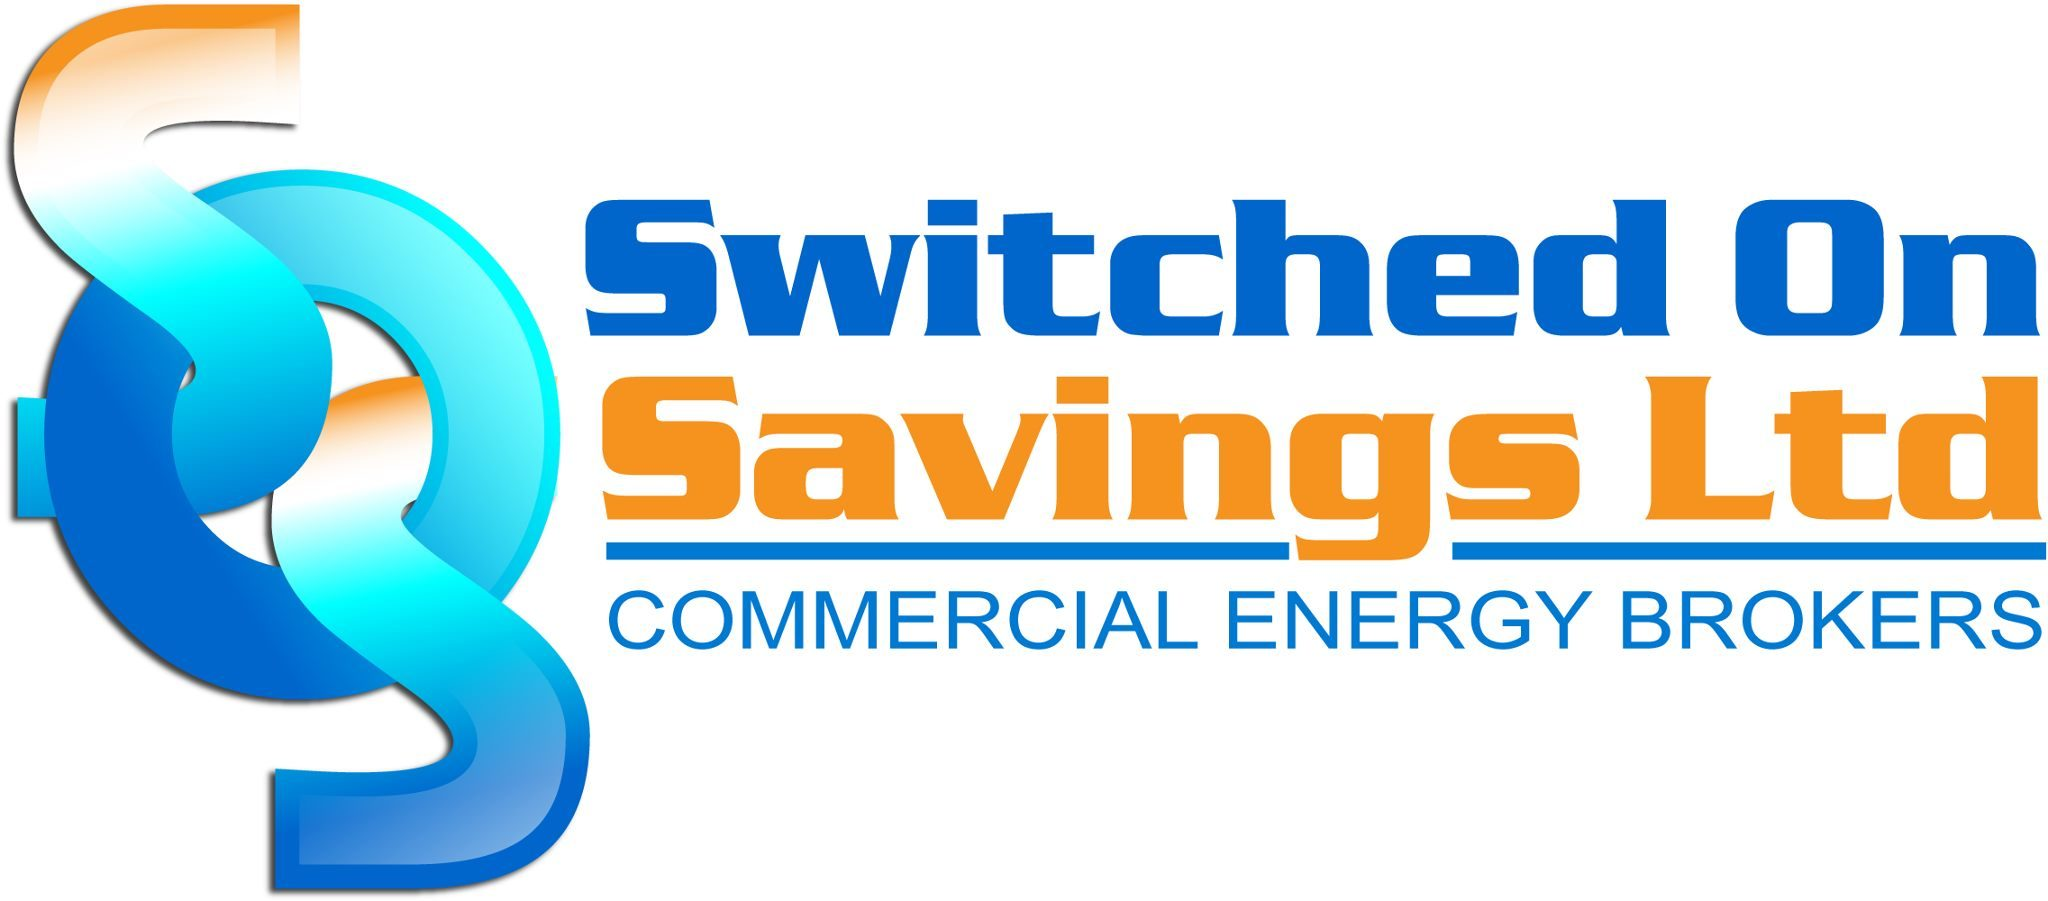 Switched on Savings - Commercial Energy Brokers